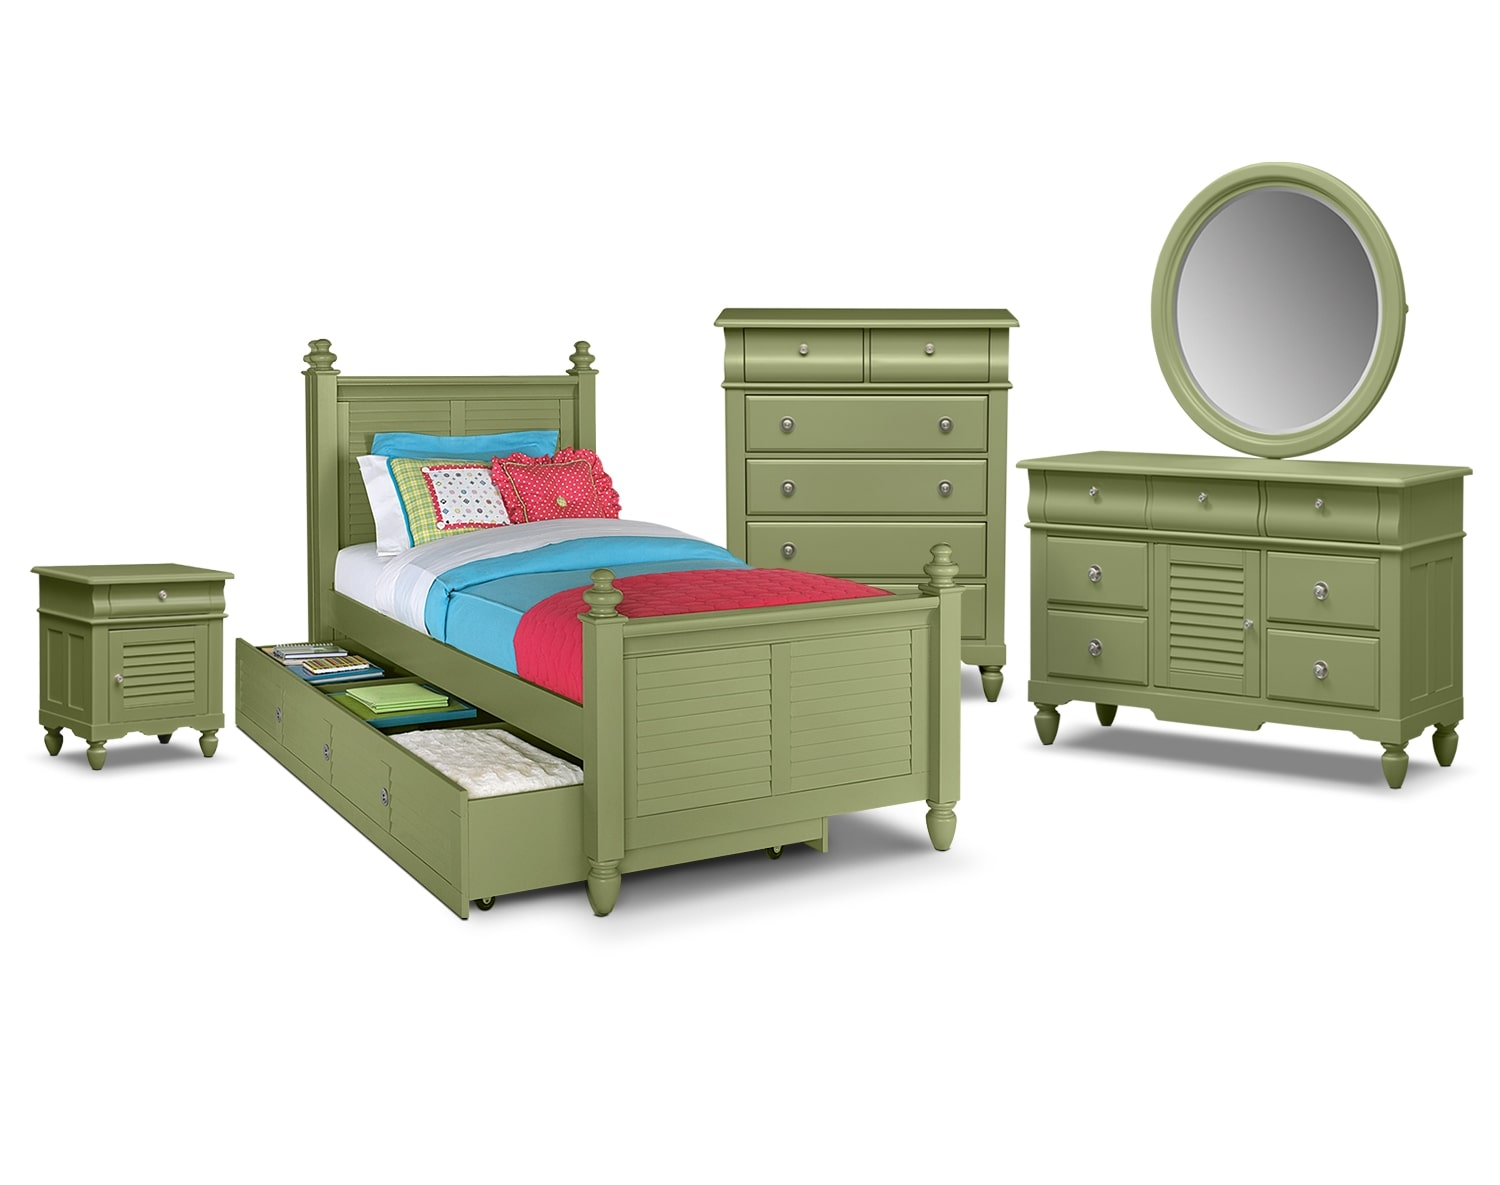 Kids Furniture - The Mayflower Green Collection - Twin Bed